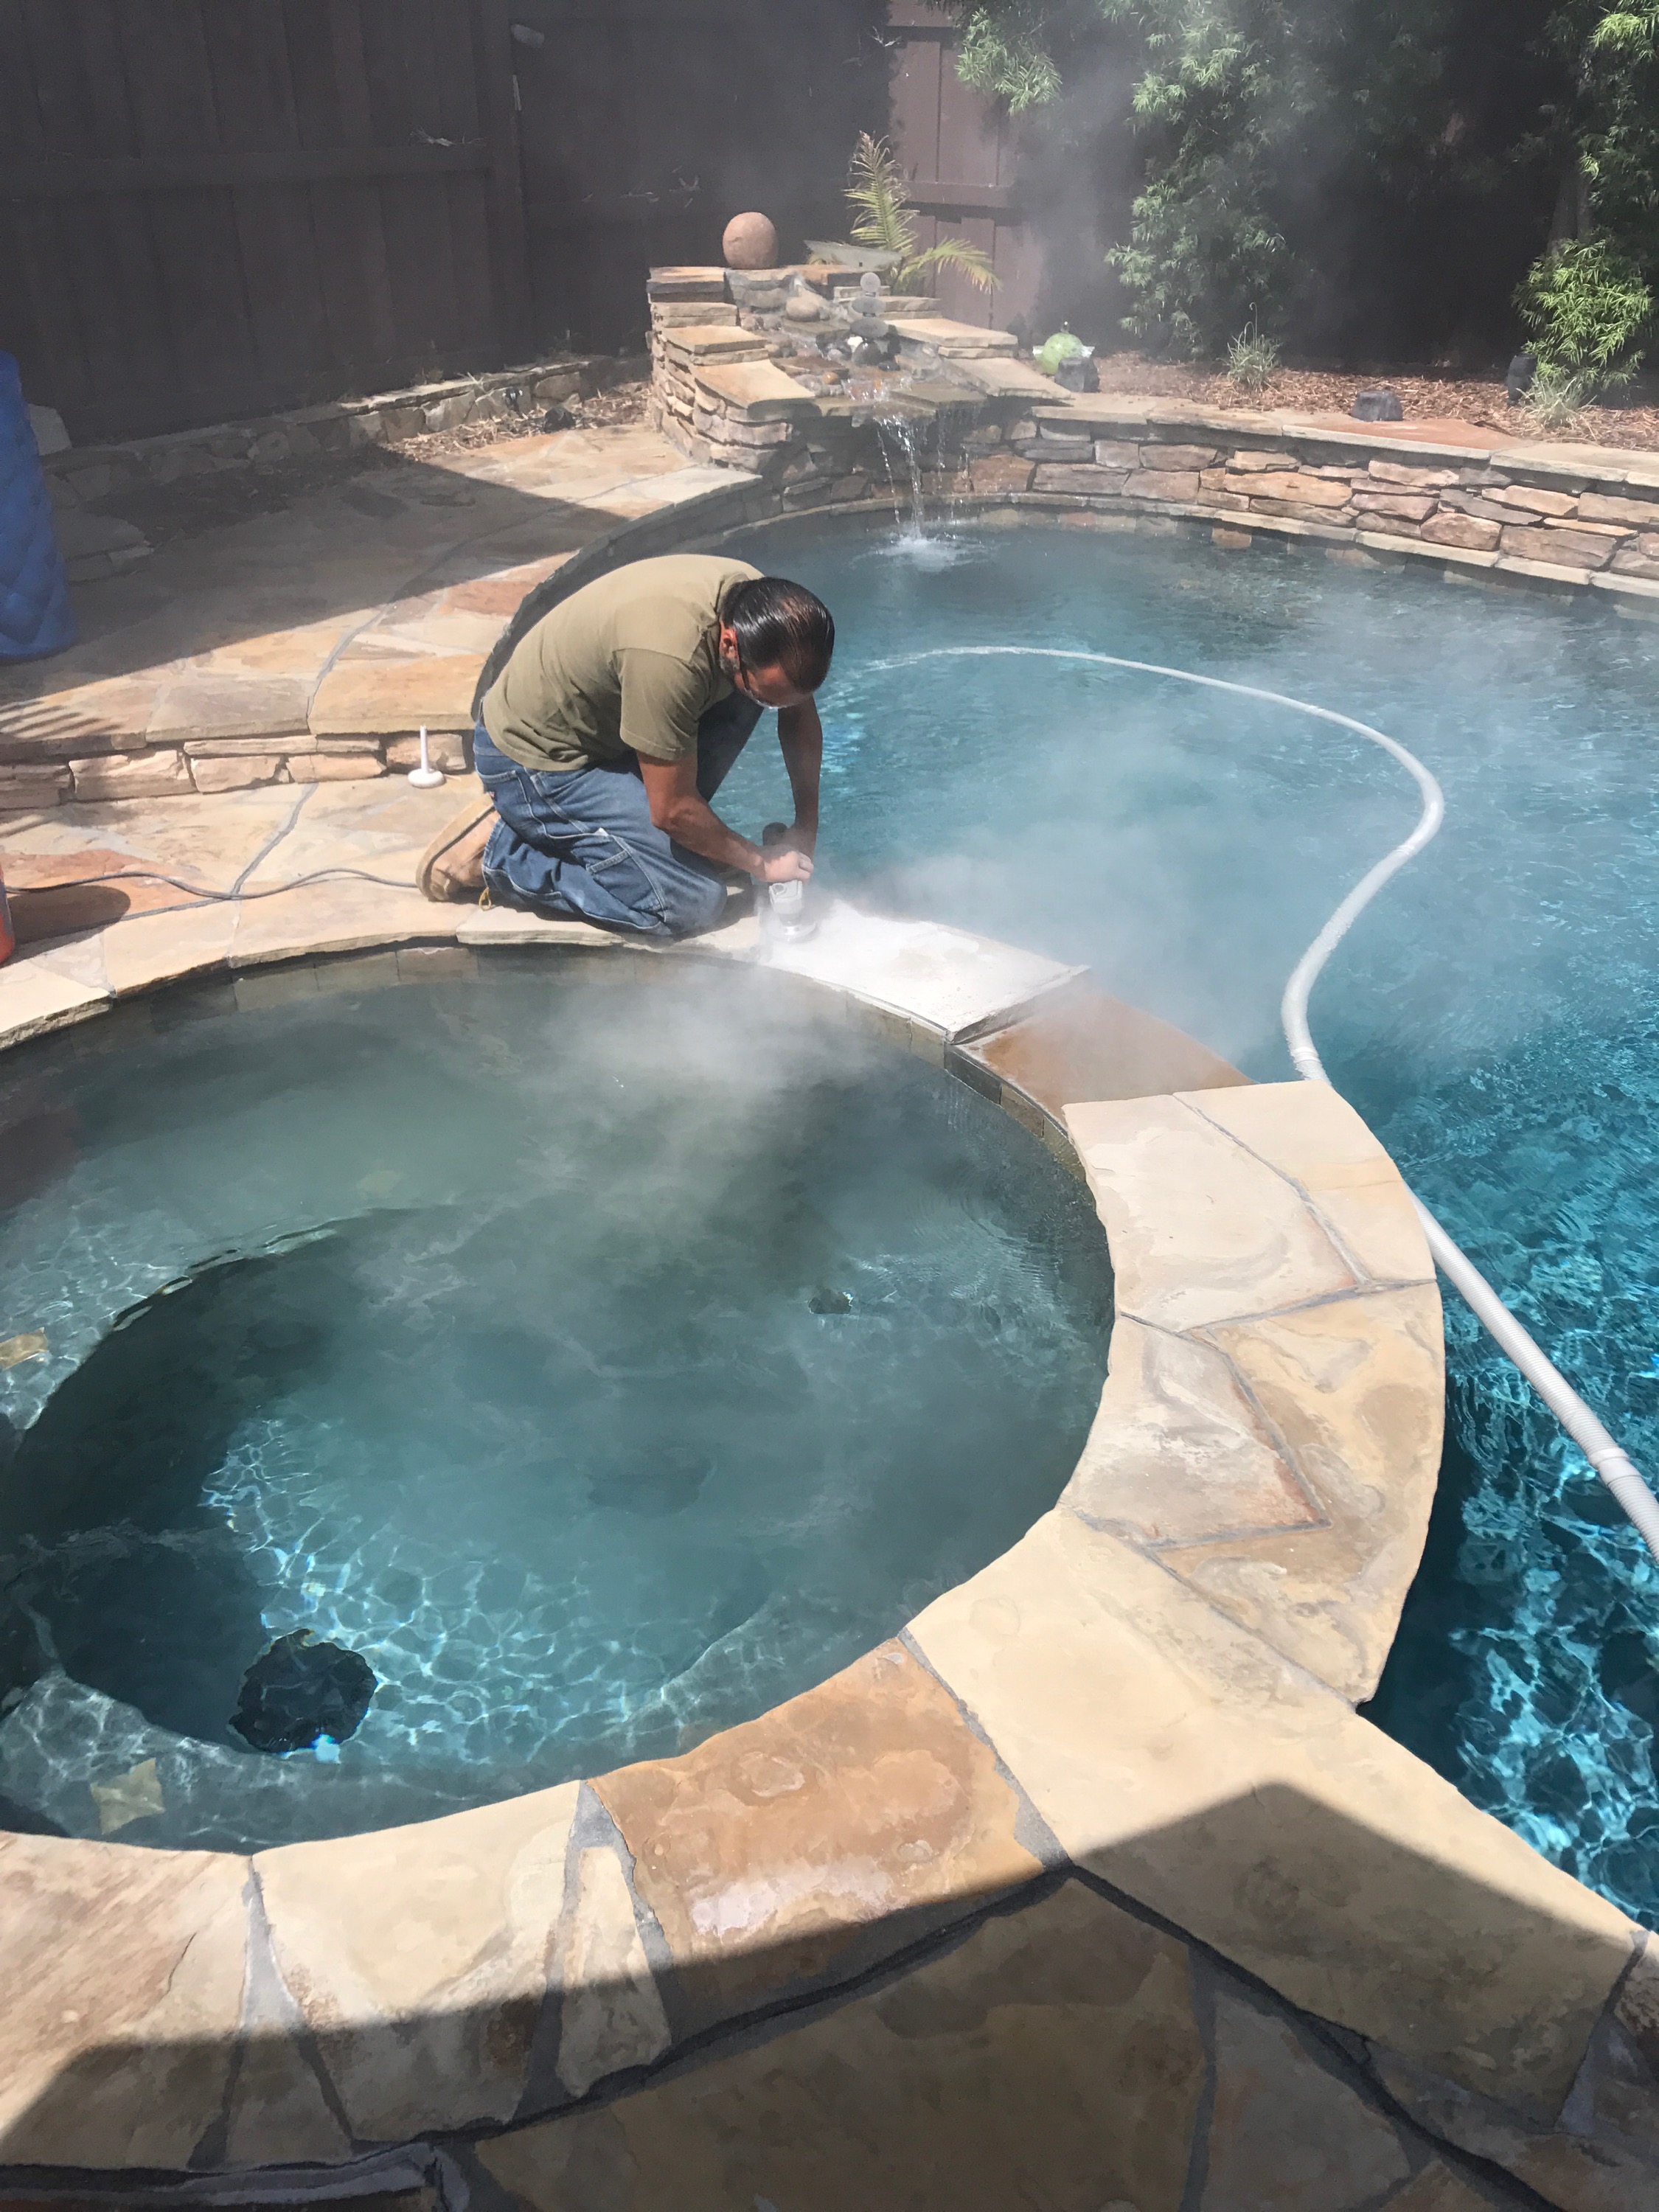 San Diego pool and tile Coping repair